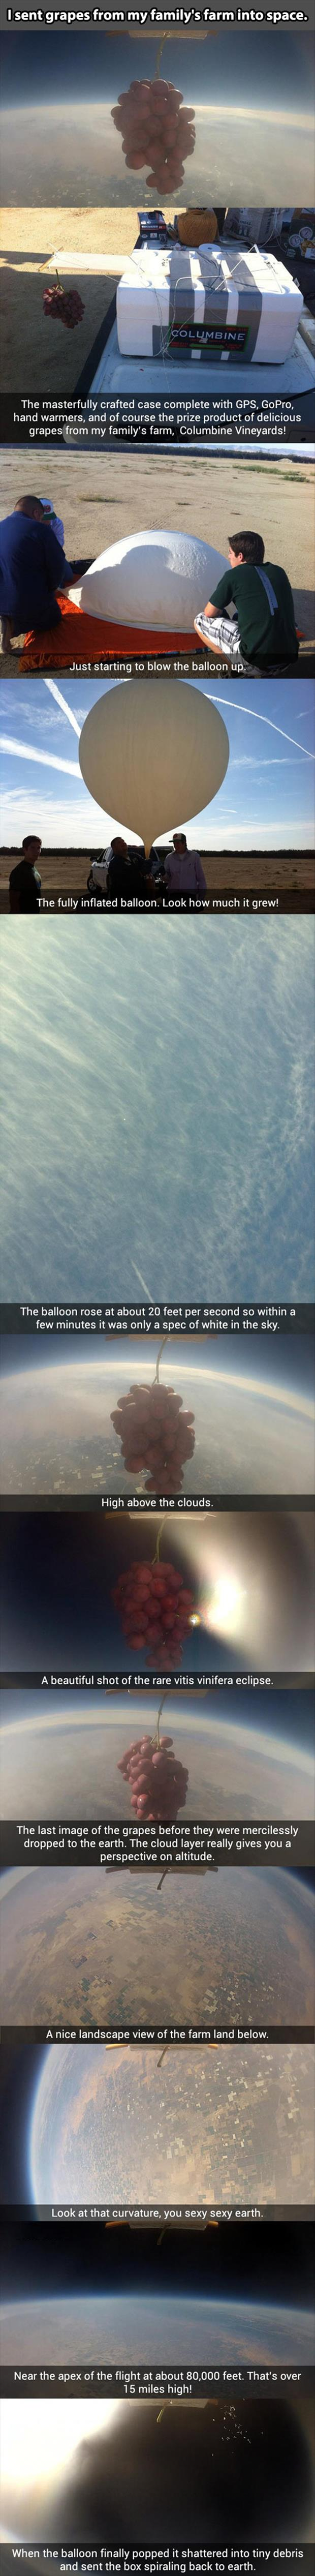 sent my grapes into space